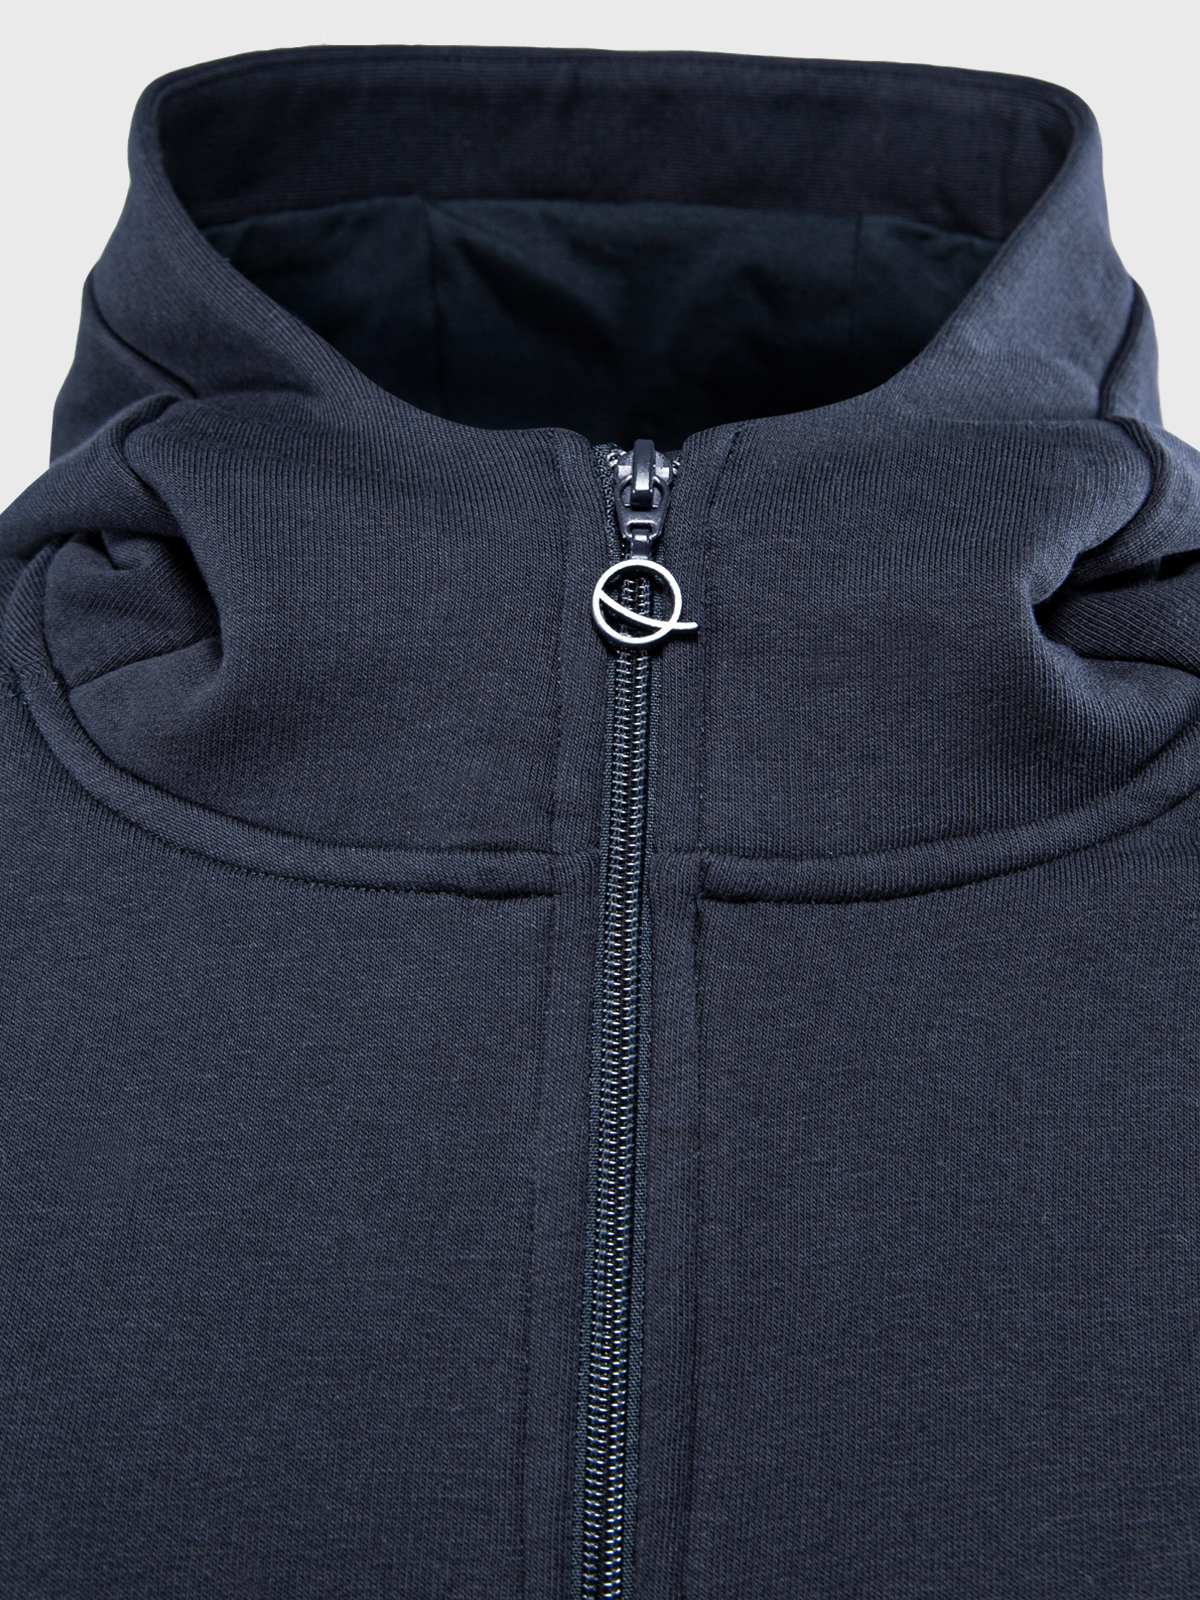 EQODE WOMEN'S FULL-ZIP FLEECE HOODIE 3